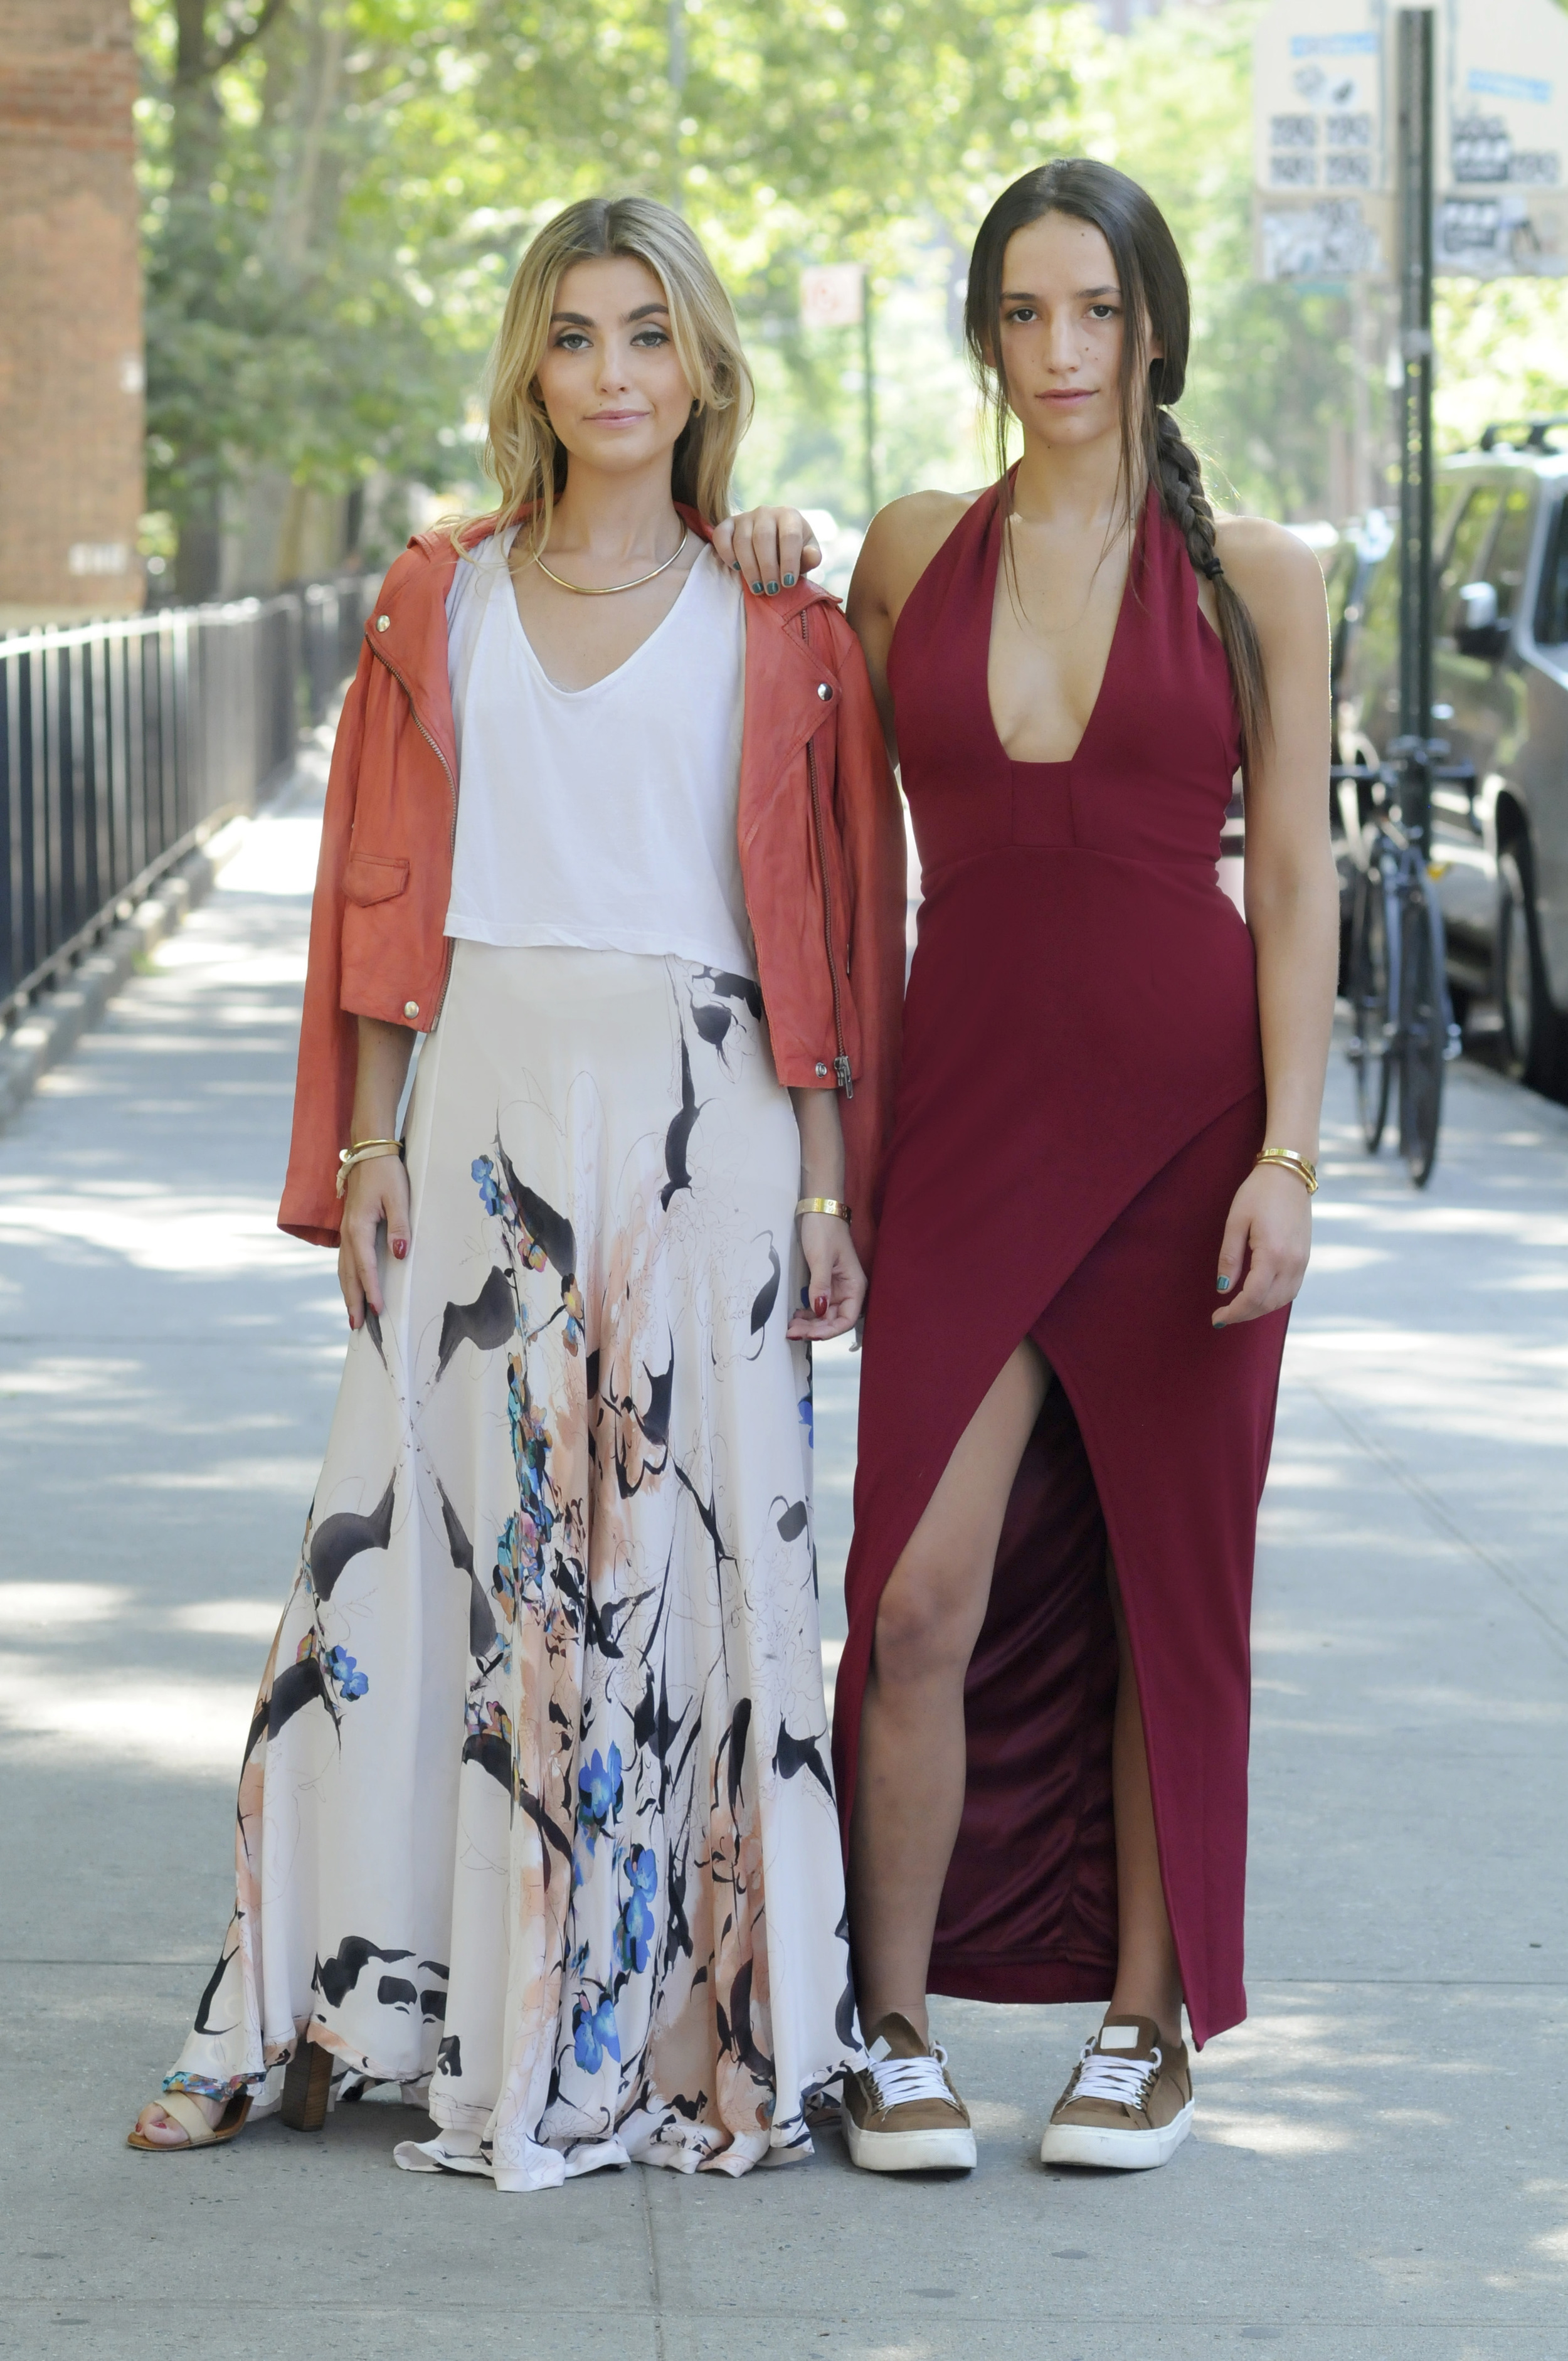 SOPHIE AND CHARLOTTE BICKLEY YIN 2MY YANG MAXI DRESS STREET STYLE SISTER FASHION BLOGGERS